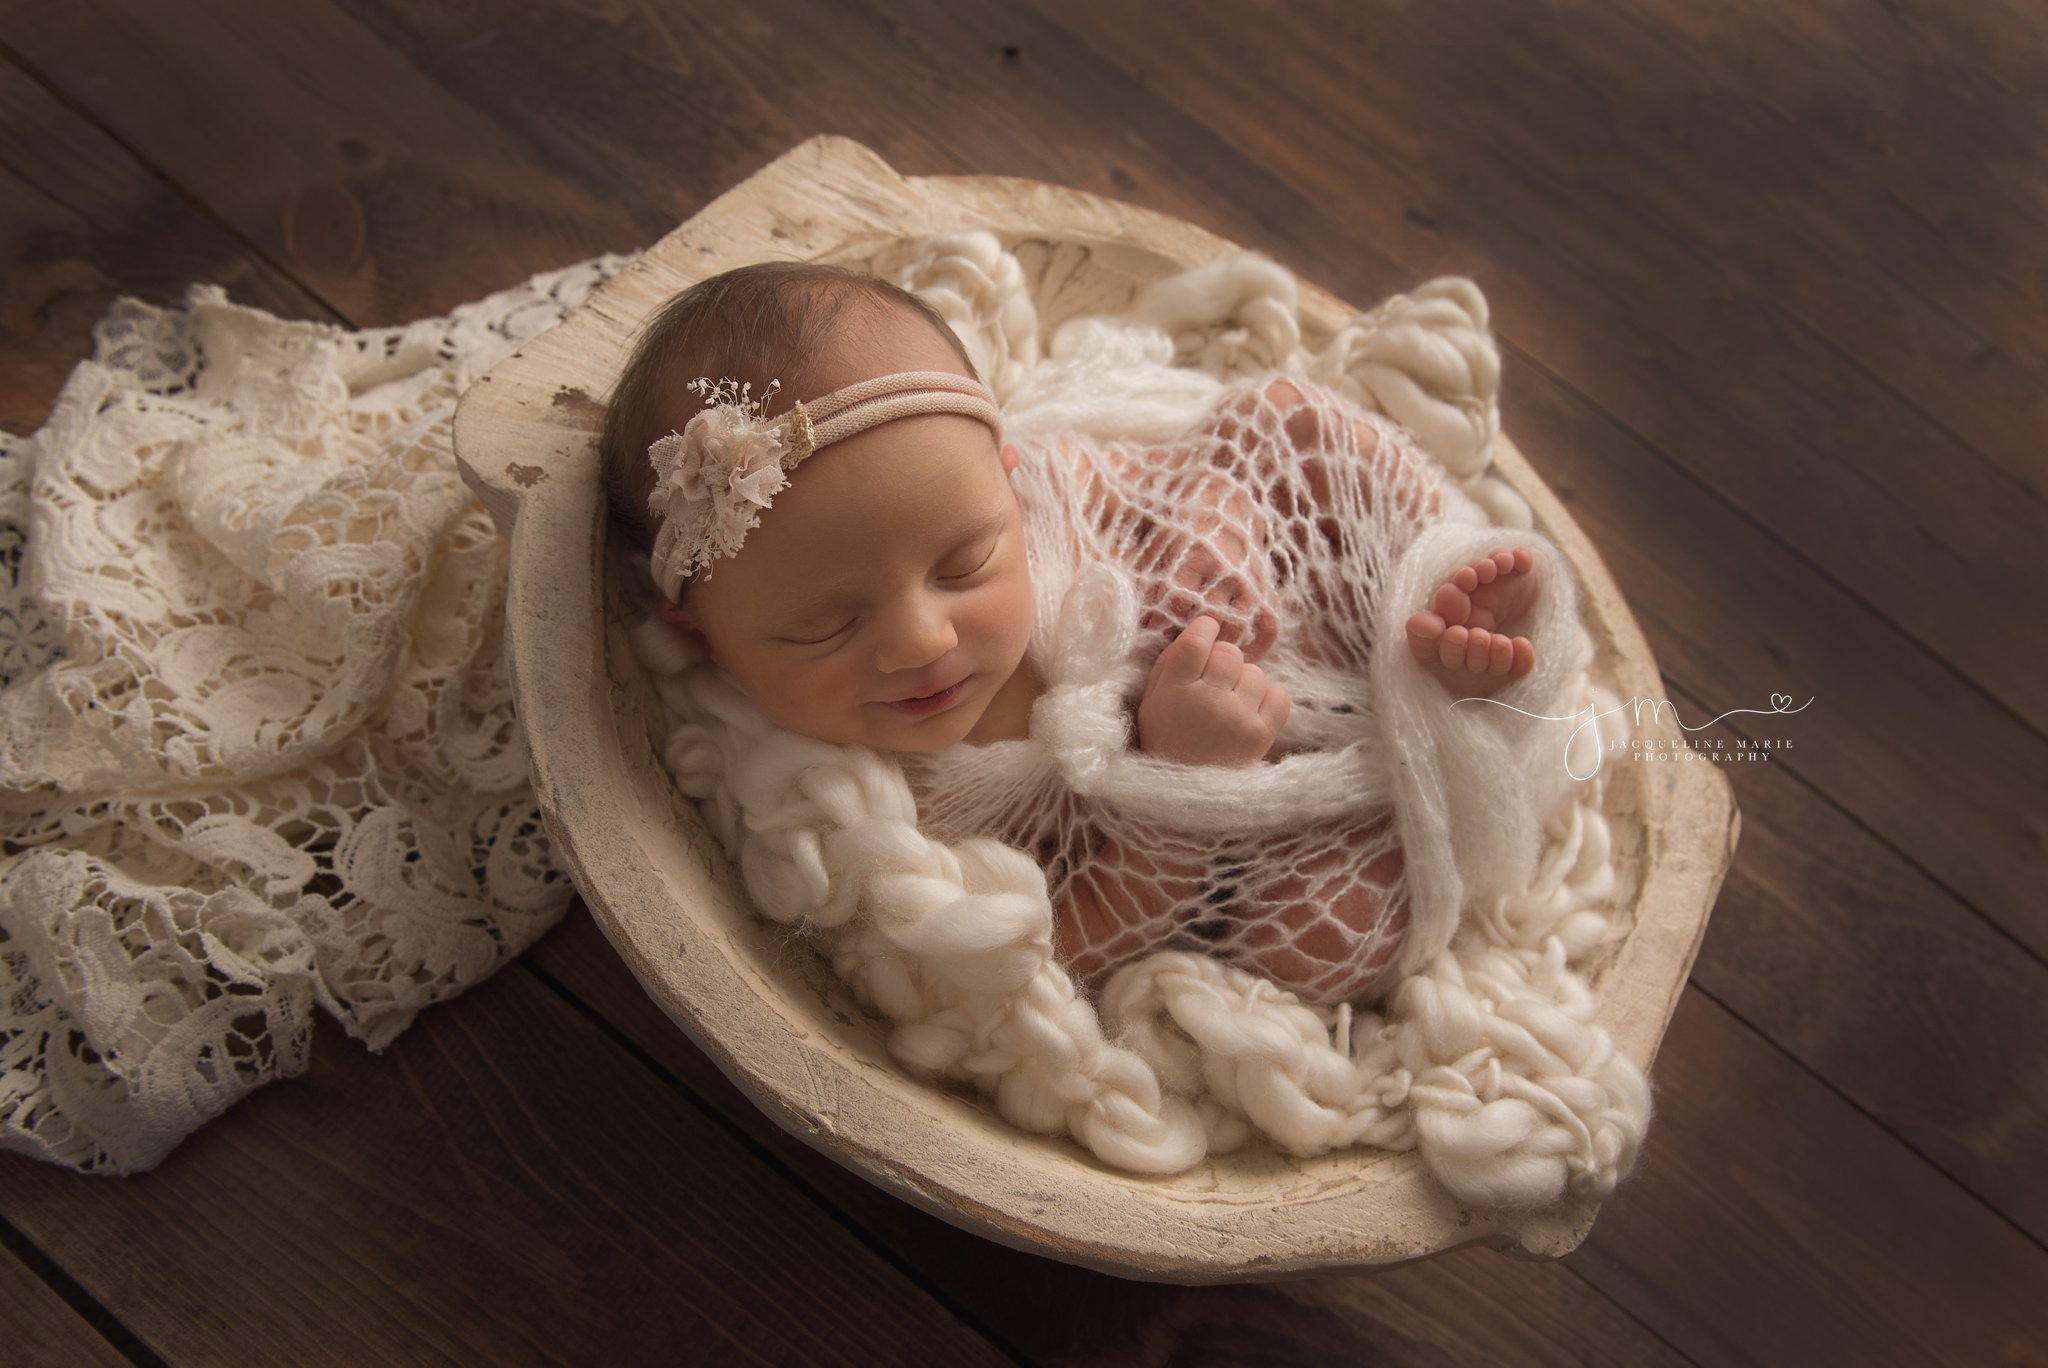 7 day old newborn baby is wrapped in vintage lace for newborn photography pictures in columbus ohio